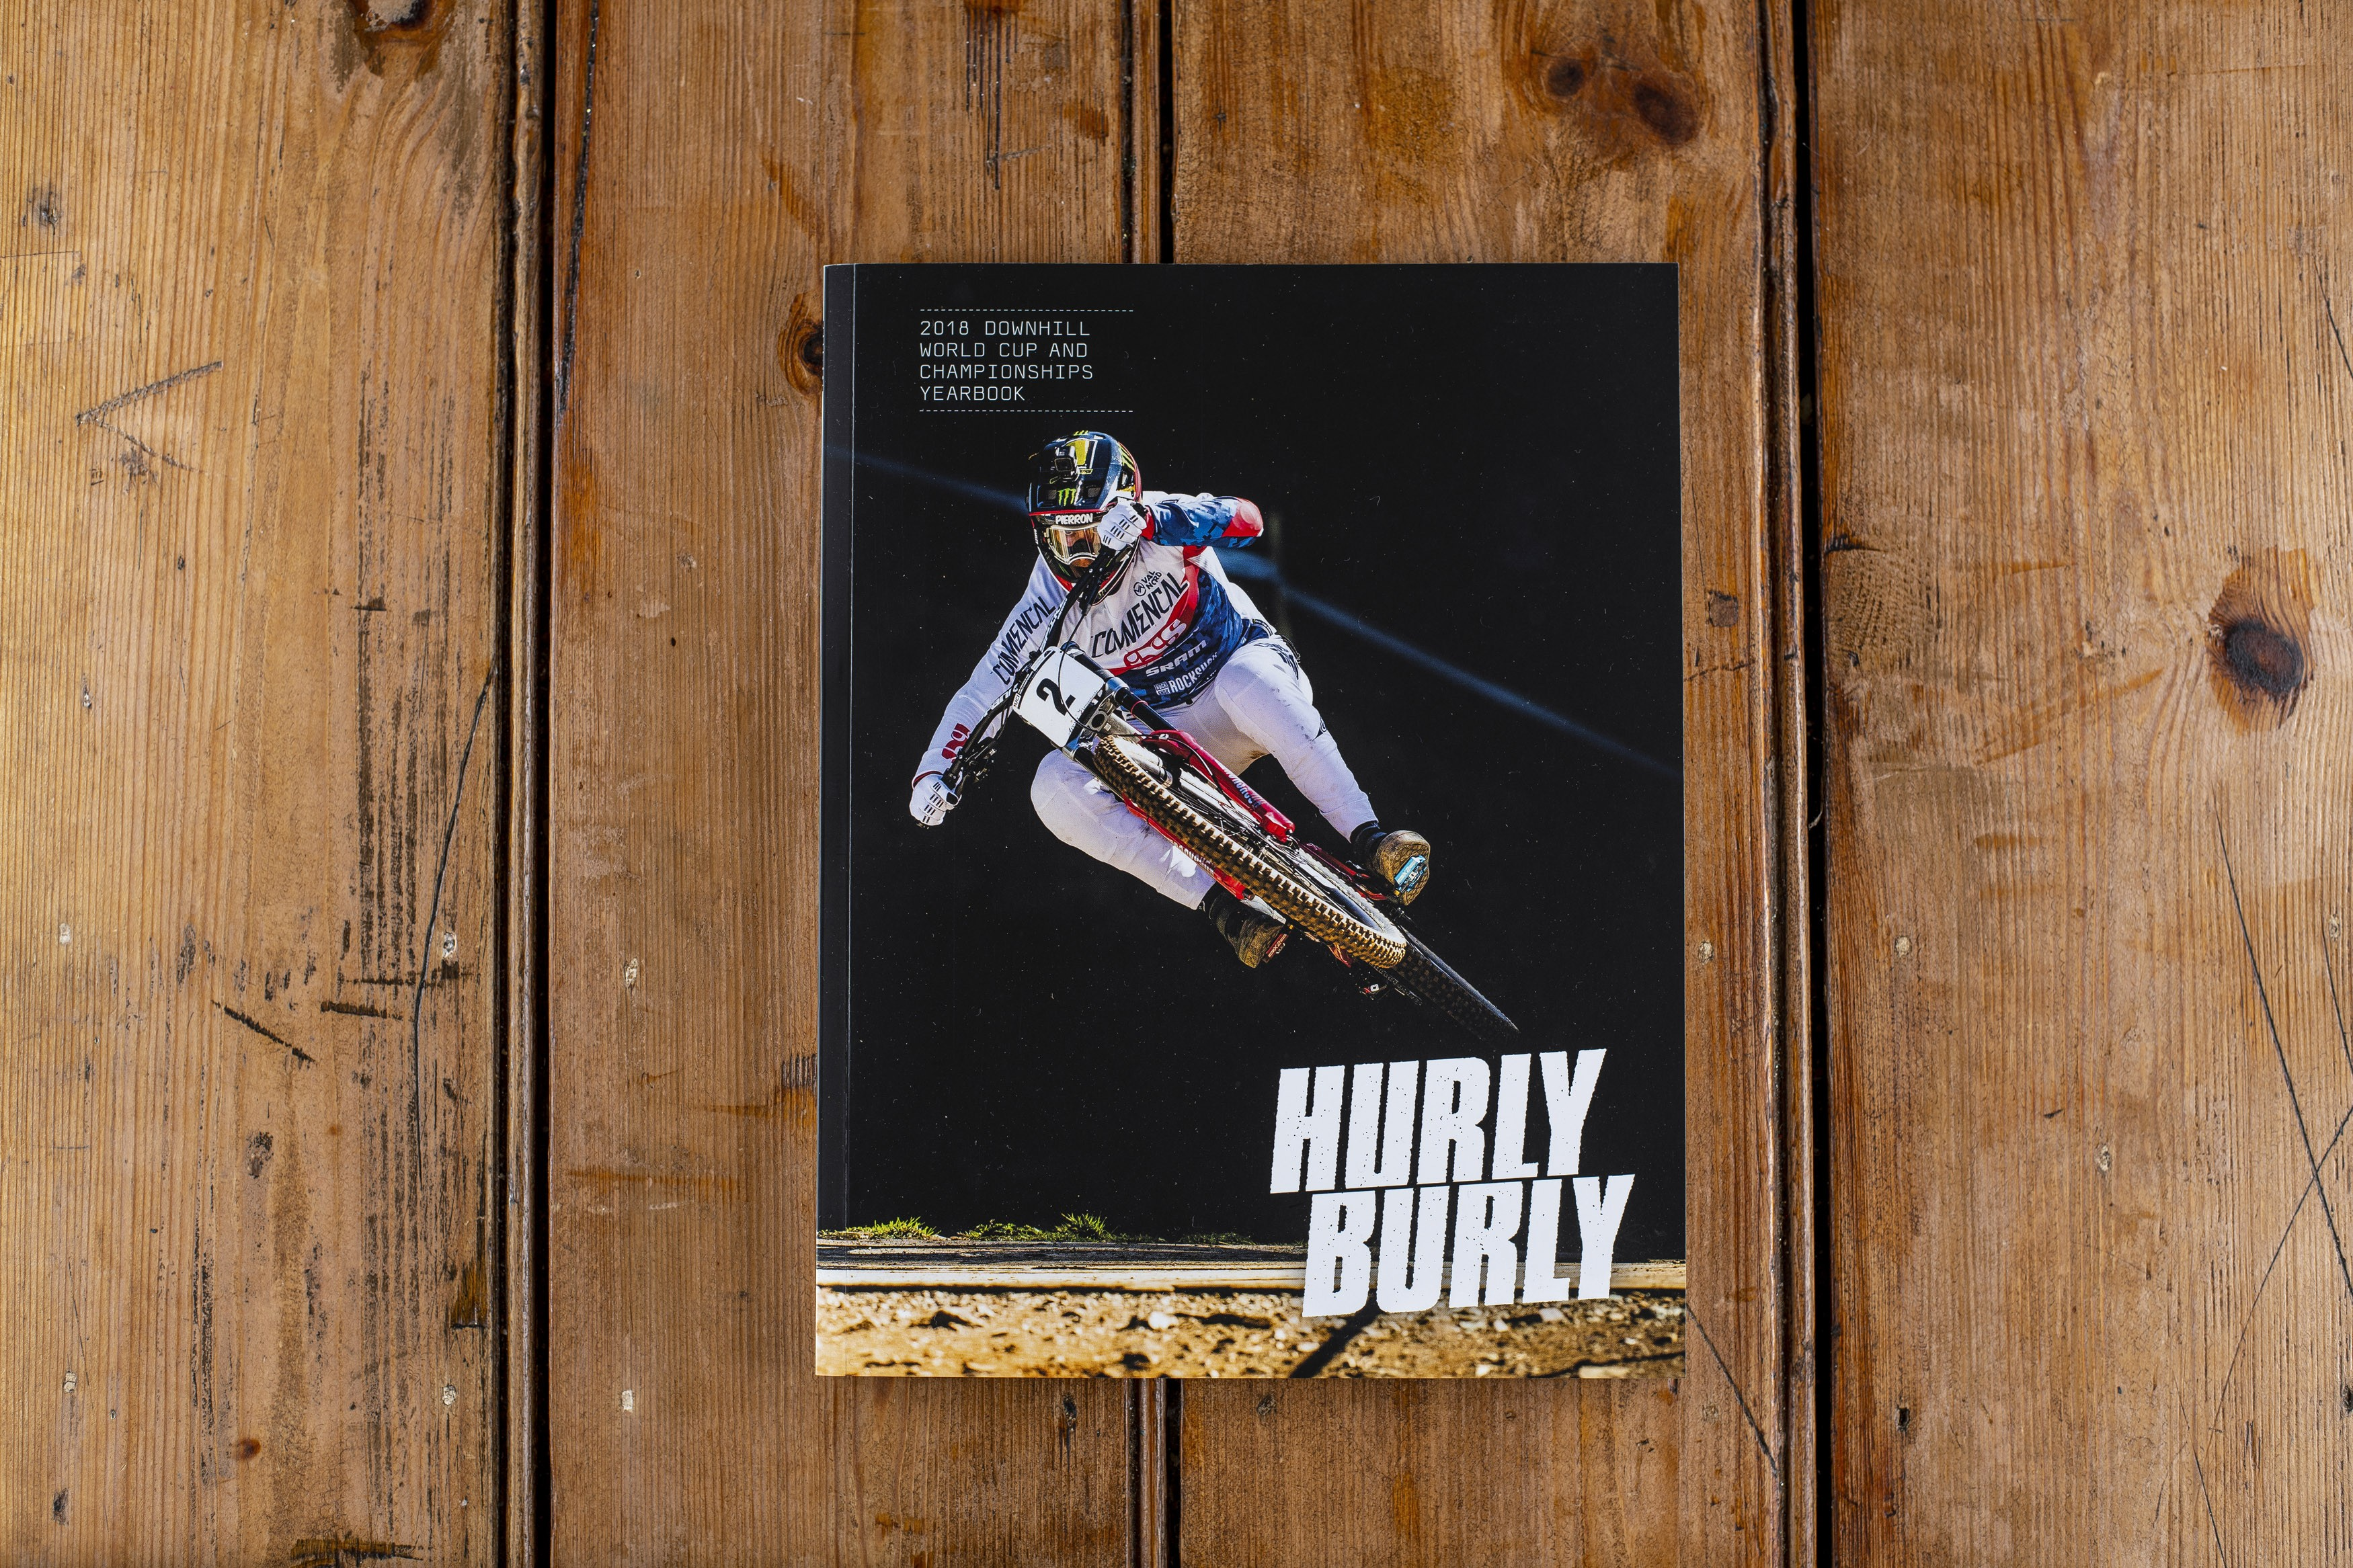 Sit tight for the latest editions of Hurly Burly and The World Stage.